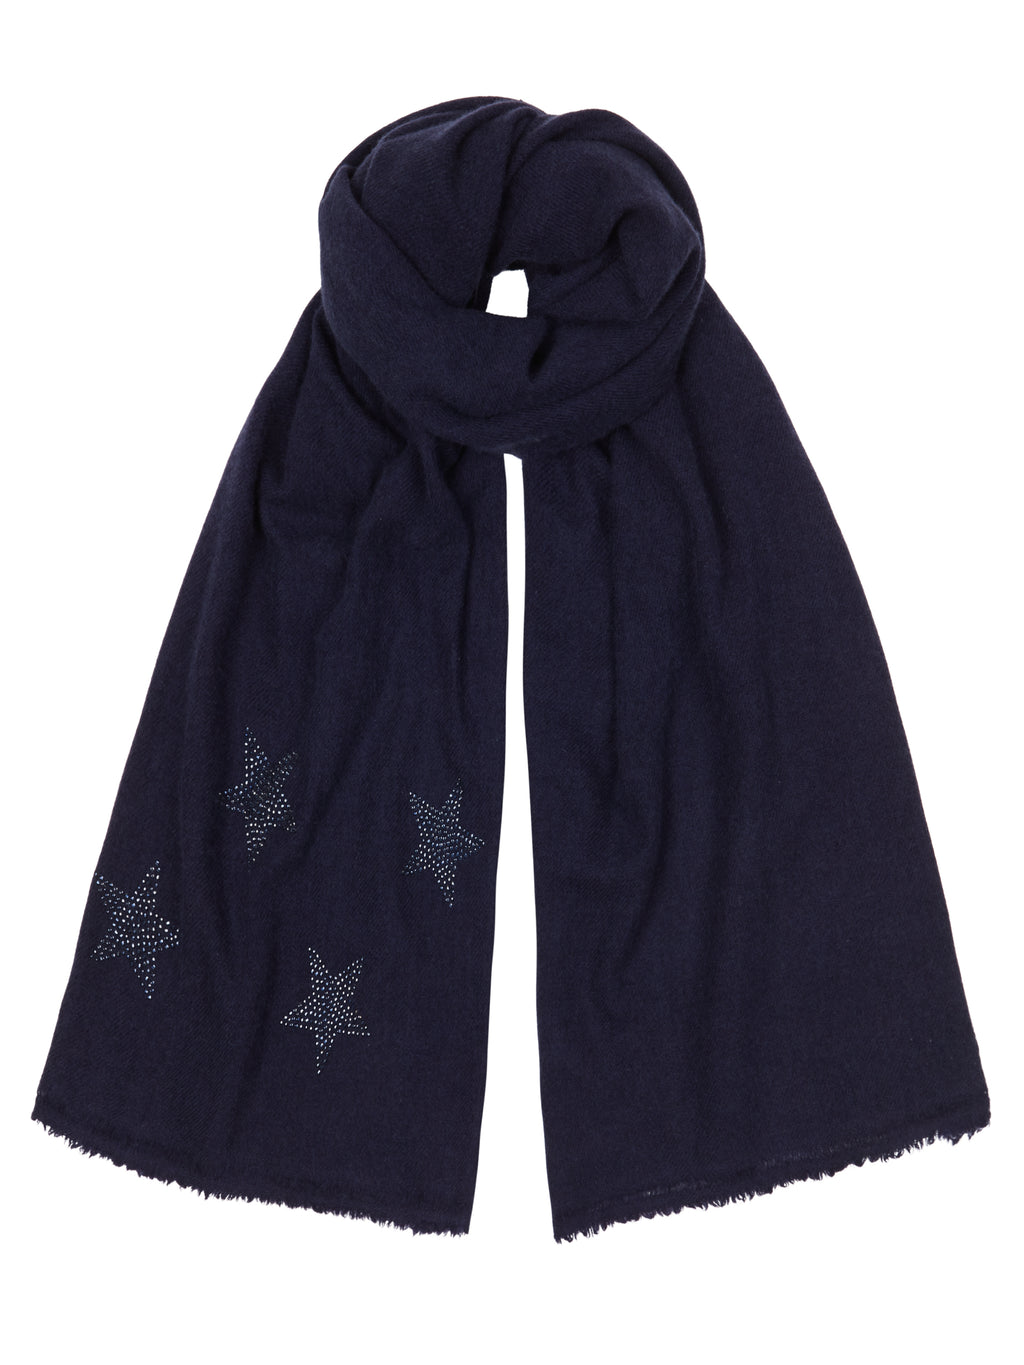 Woven Winter Cashmere Scarf STARS  (midnight blue)